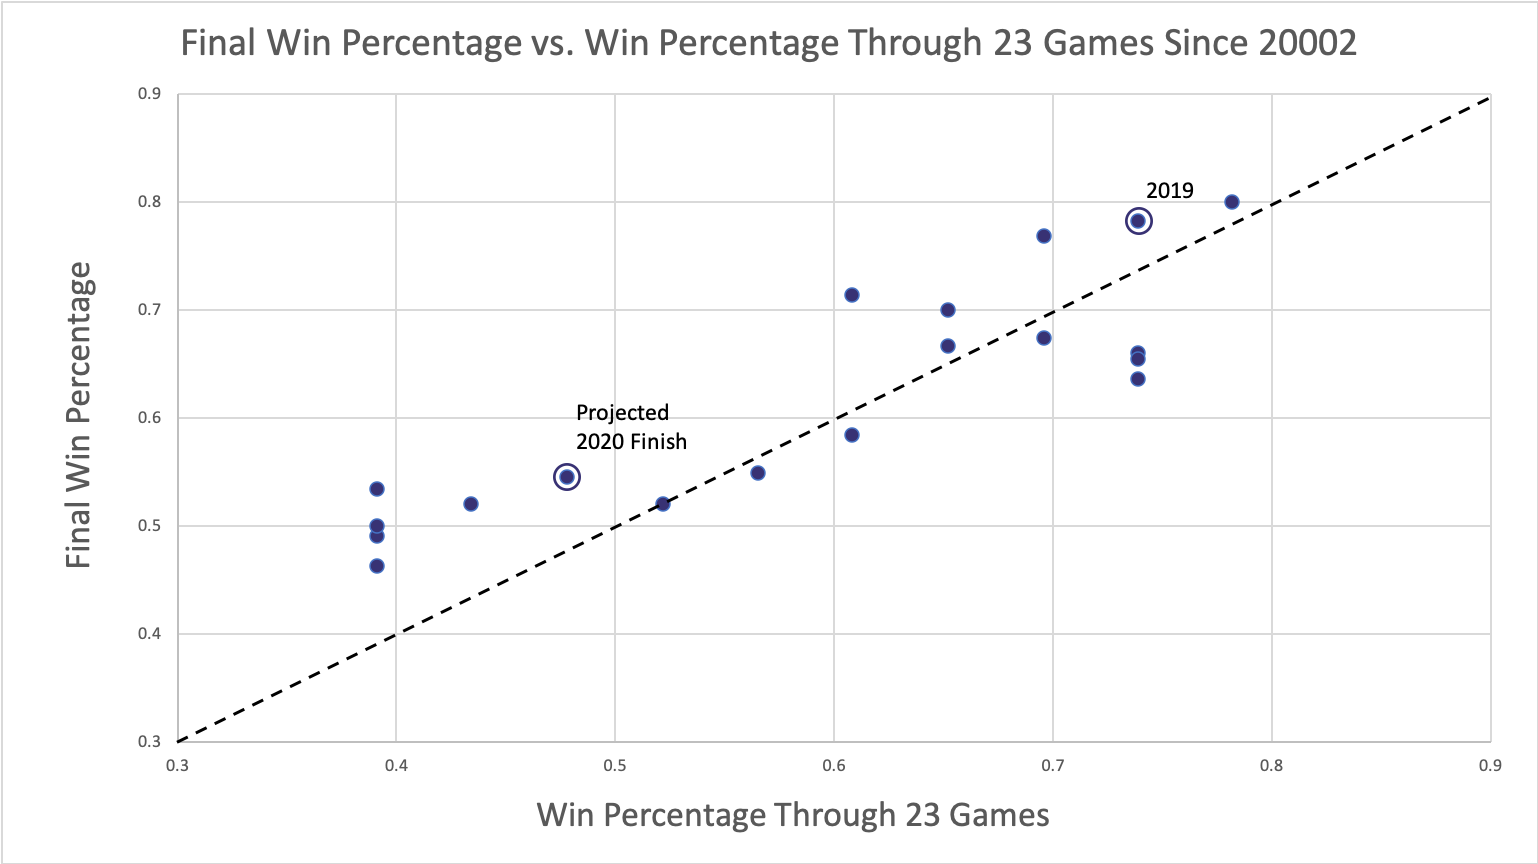 Scatterplot titled: Final Win Percentage vs. Win Percentage Through 23 Games Since 2002. Each season is marked by a point plotted based on win percentage through 23 games on the x-axis and final win percentage on the y-axis. A dotted line splits the plot diagonally. 13 points fall above the line, 6 fall below.